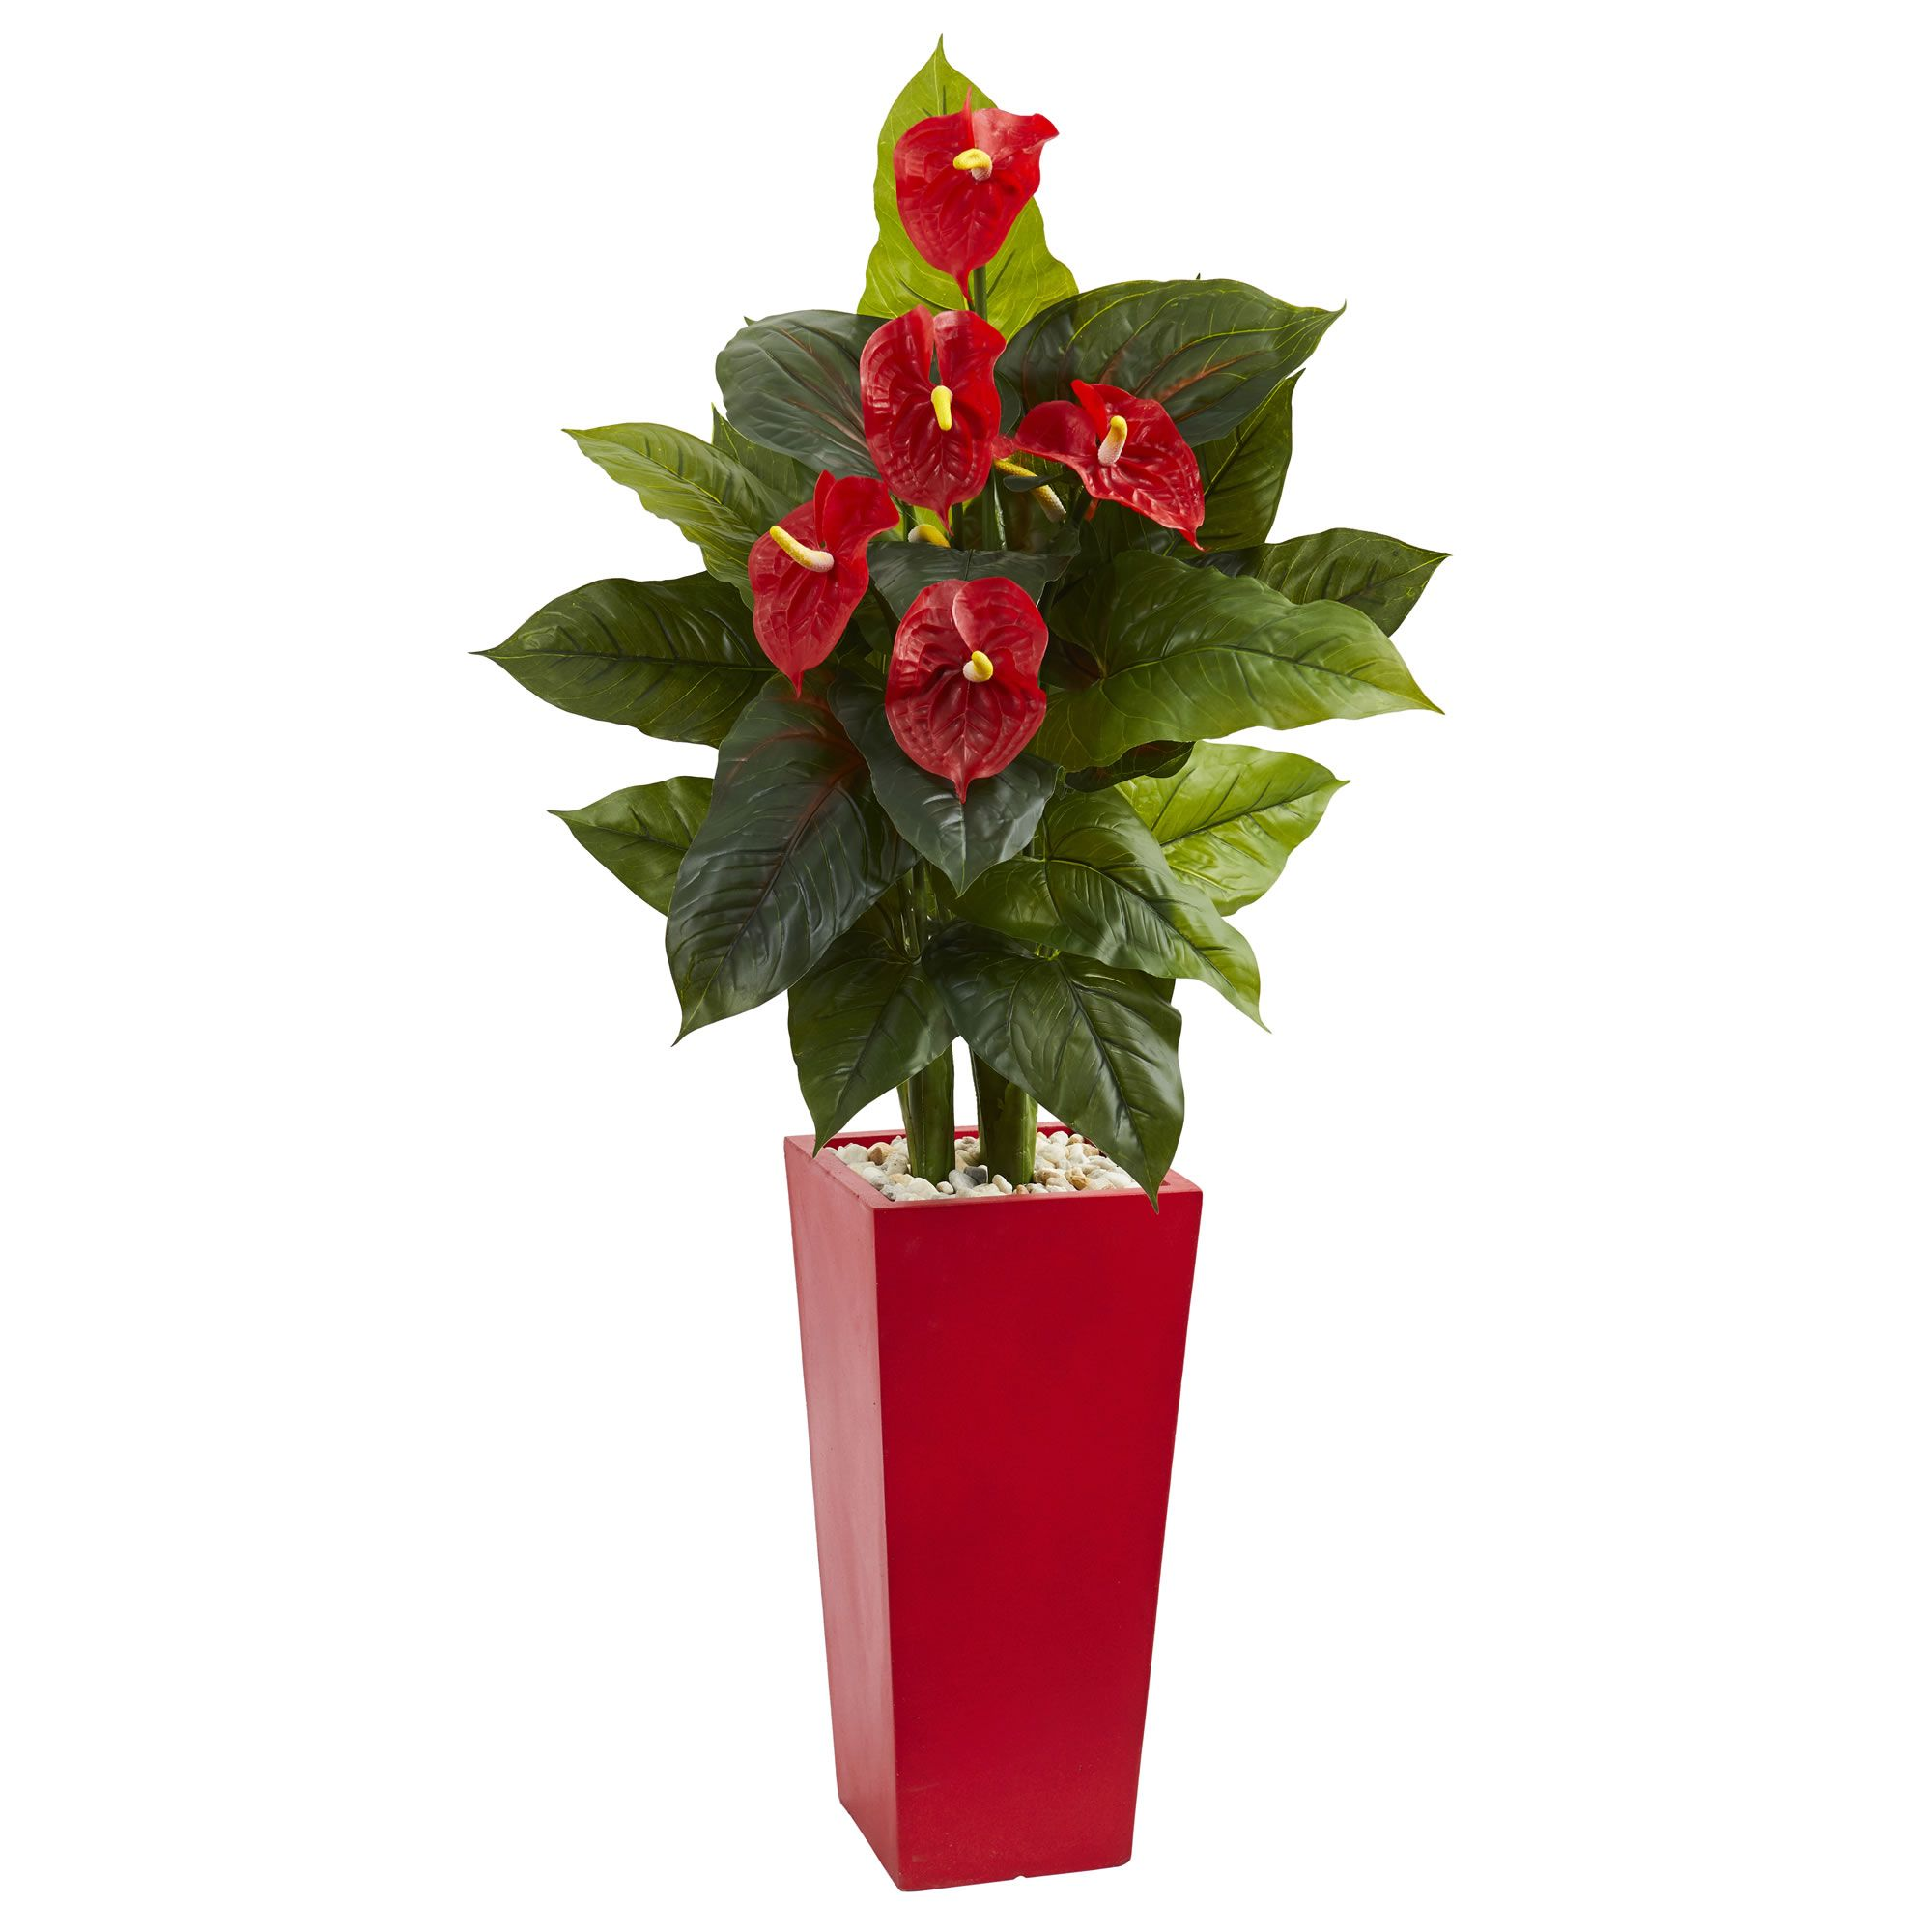 This Artificial Anthurium Plant Will Grab Your Attention With Its Bright Red Tropical Blooms Green Leaves And Natural Looking Stems Emerging From White River